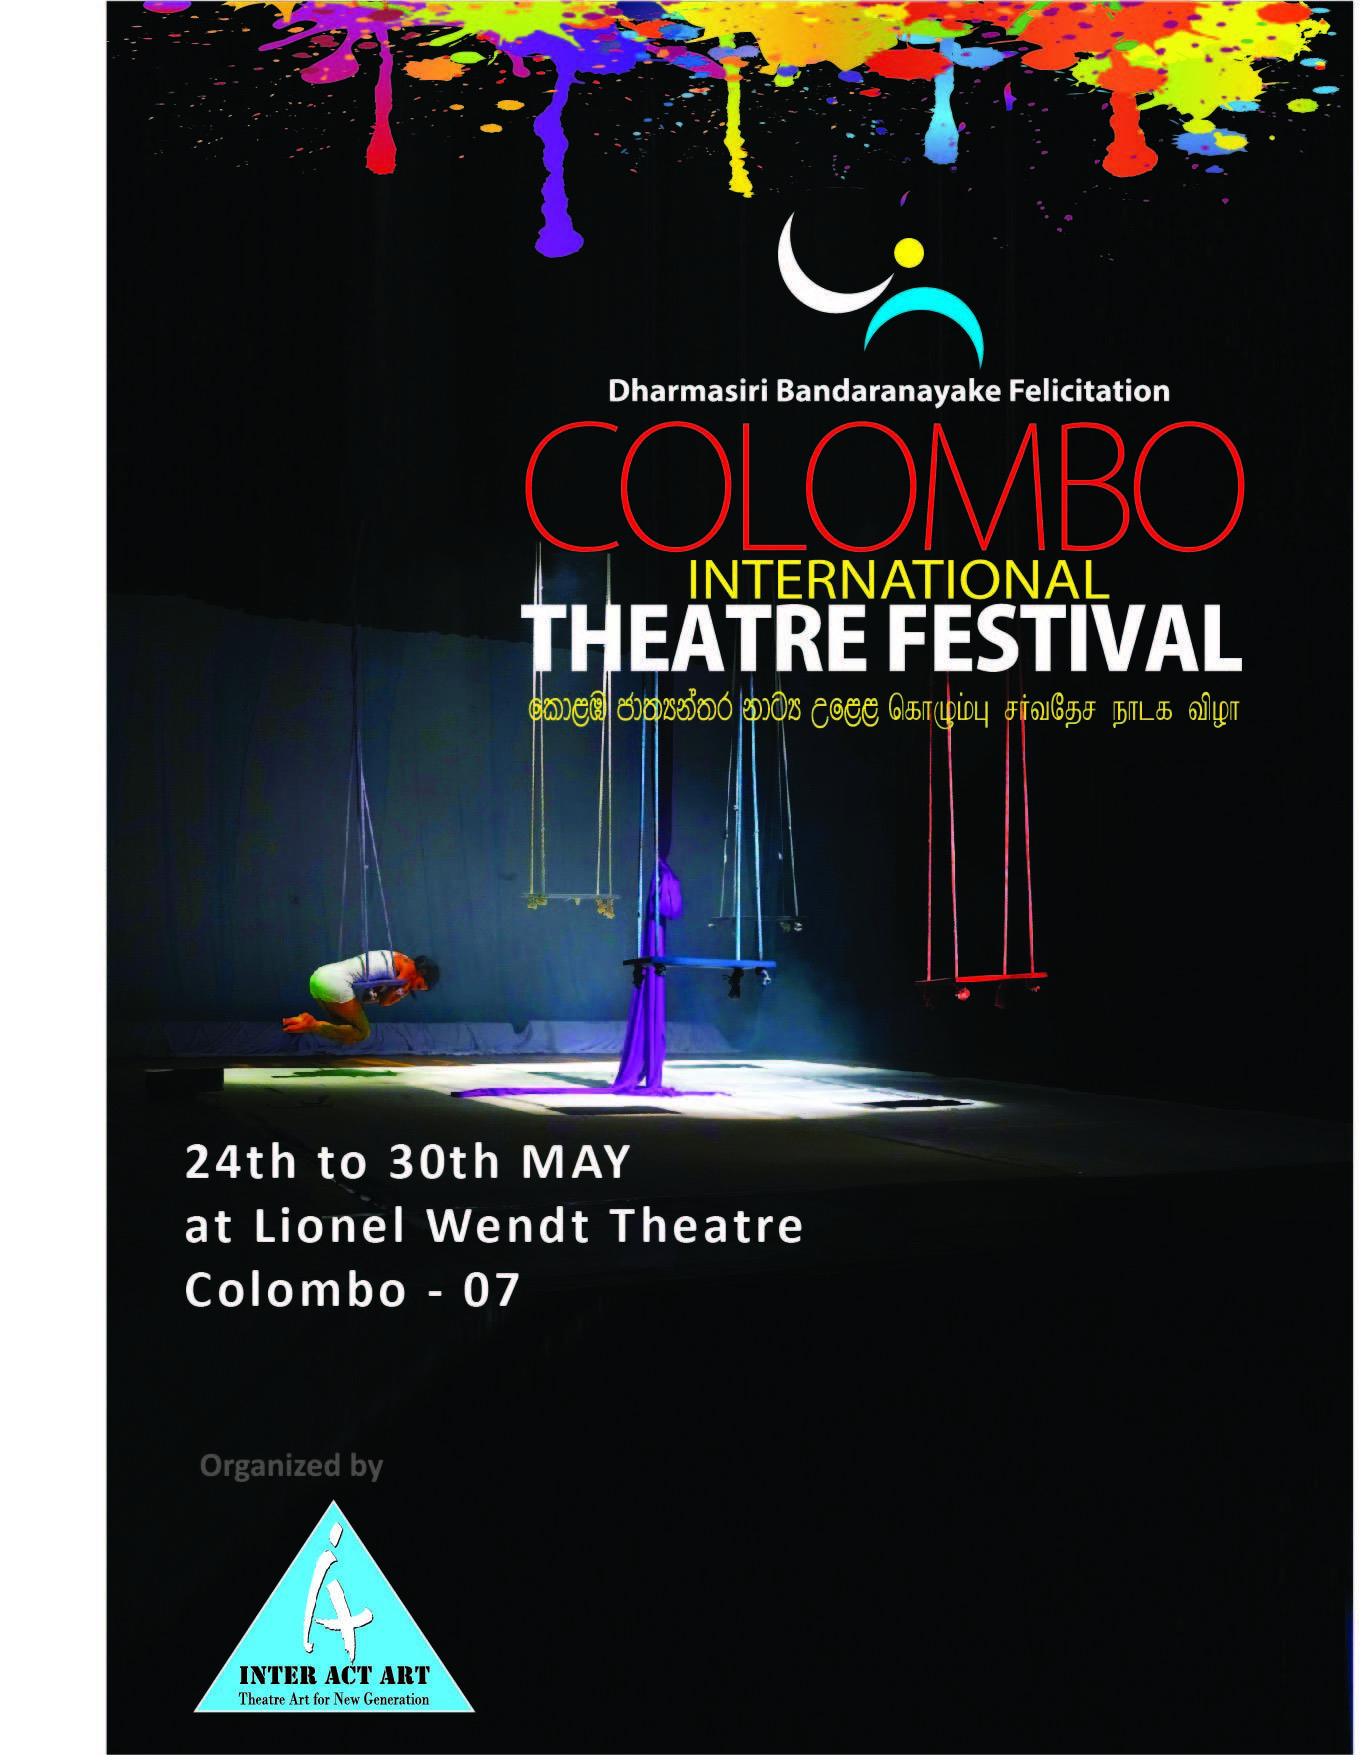 The Colombo International Theatre Festival 2018